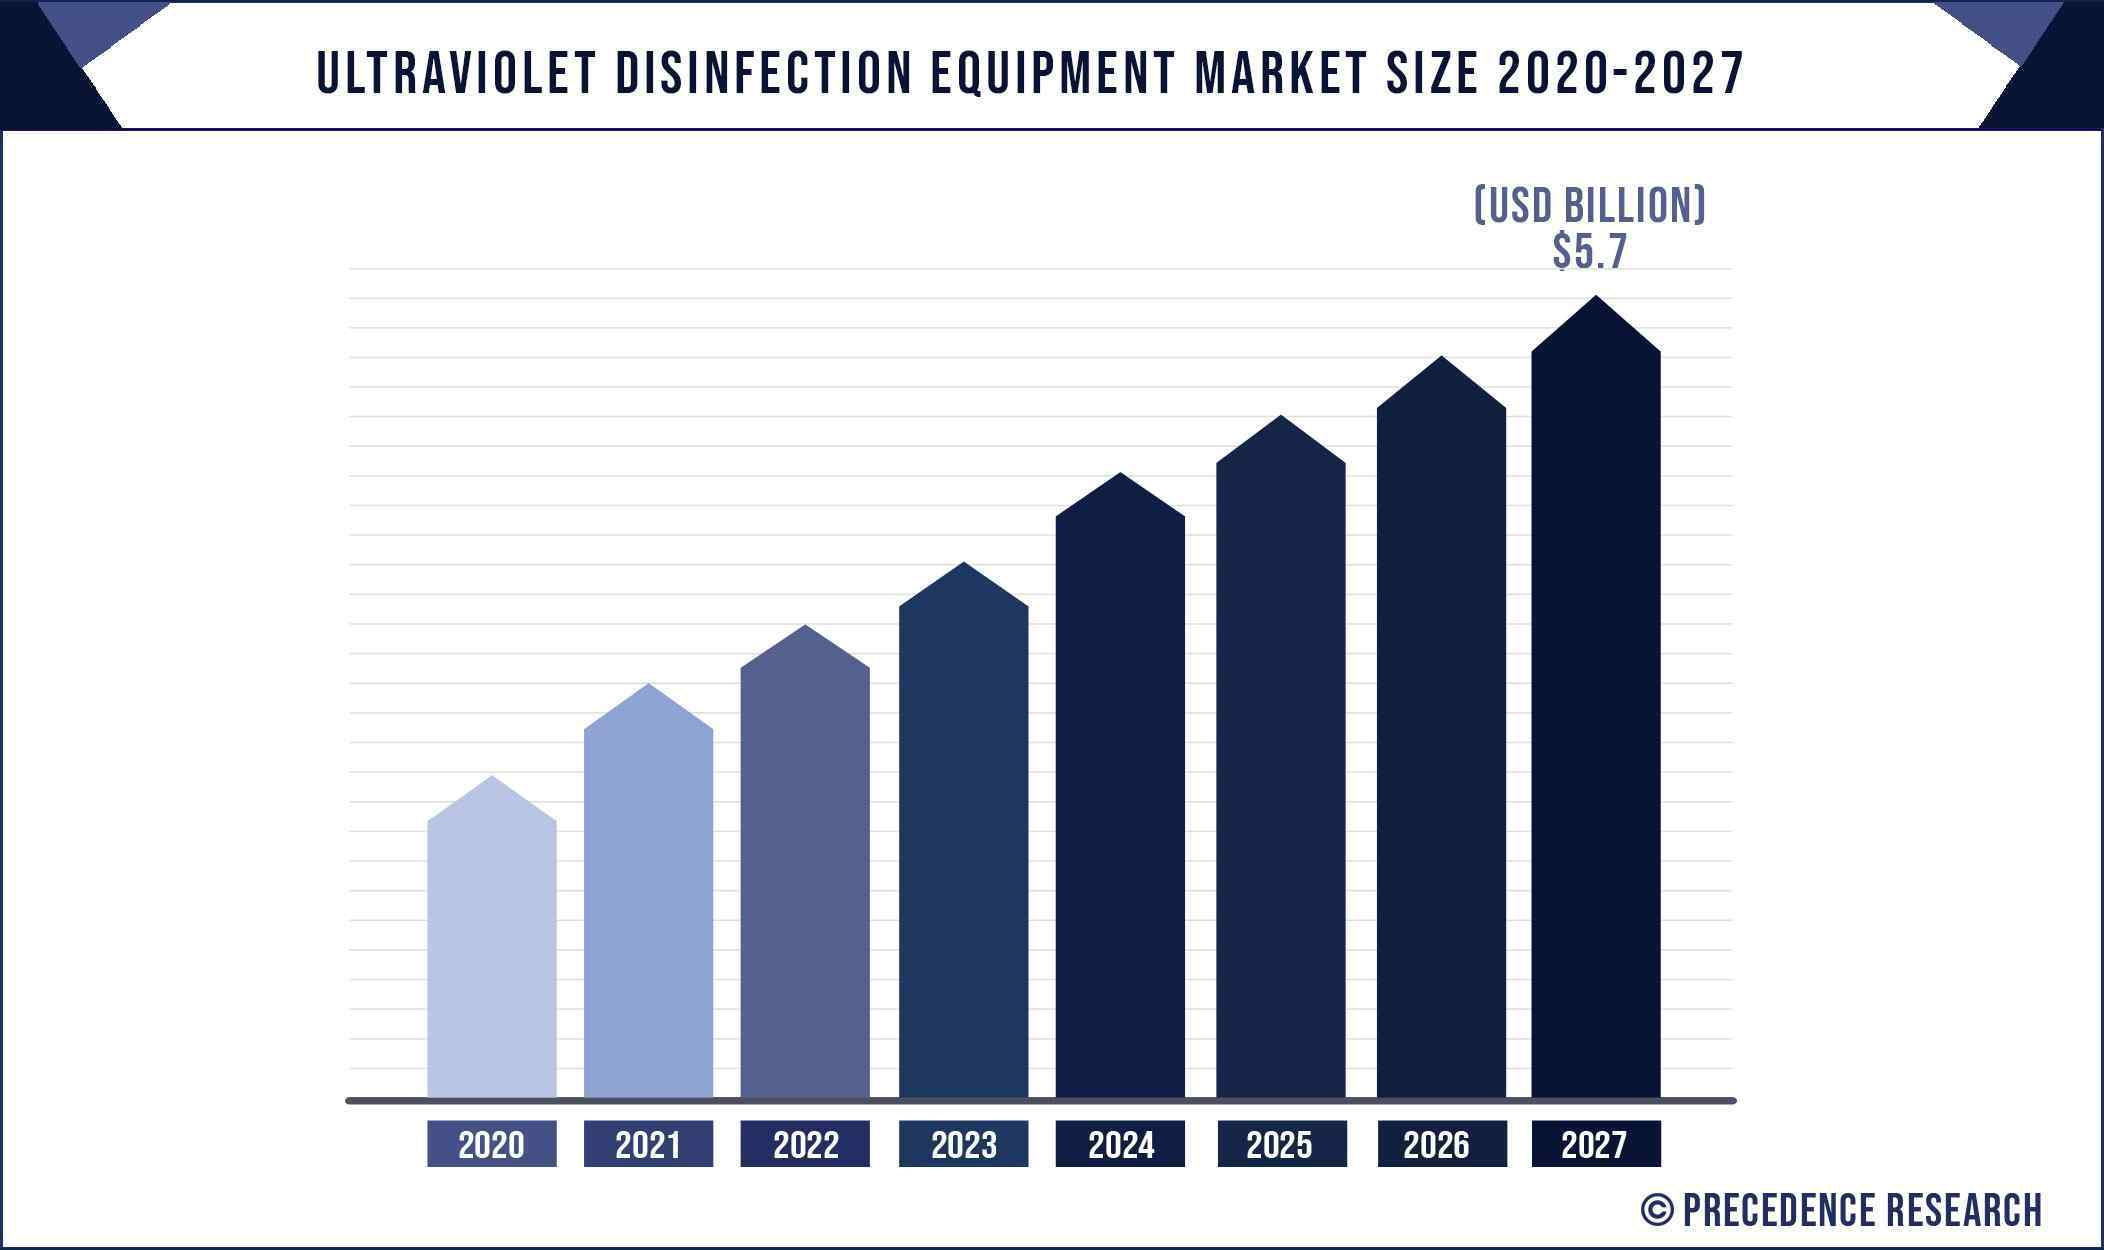 Ultraviolet Disinfection Equipment Market Size 2020 to 2027